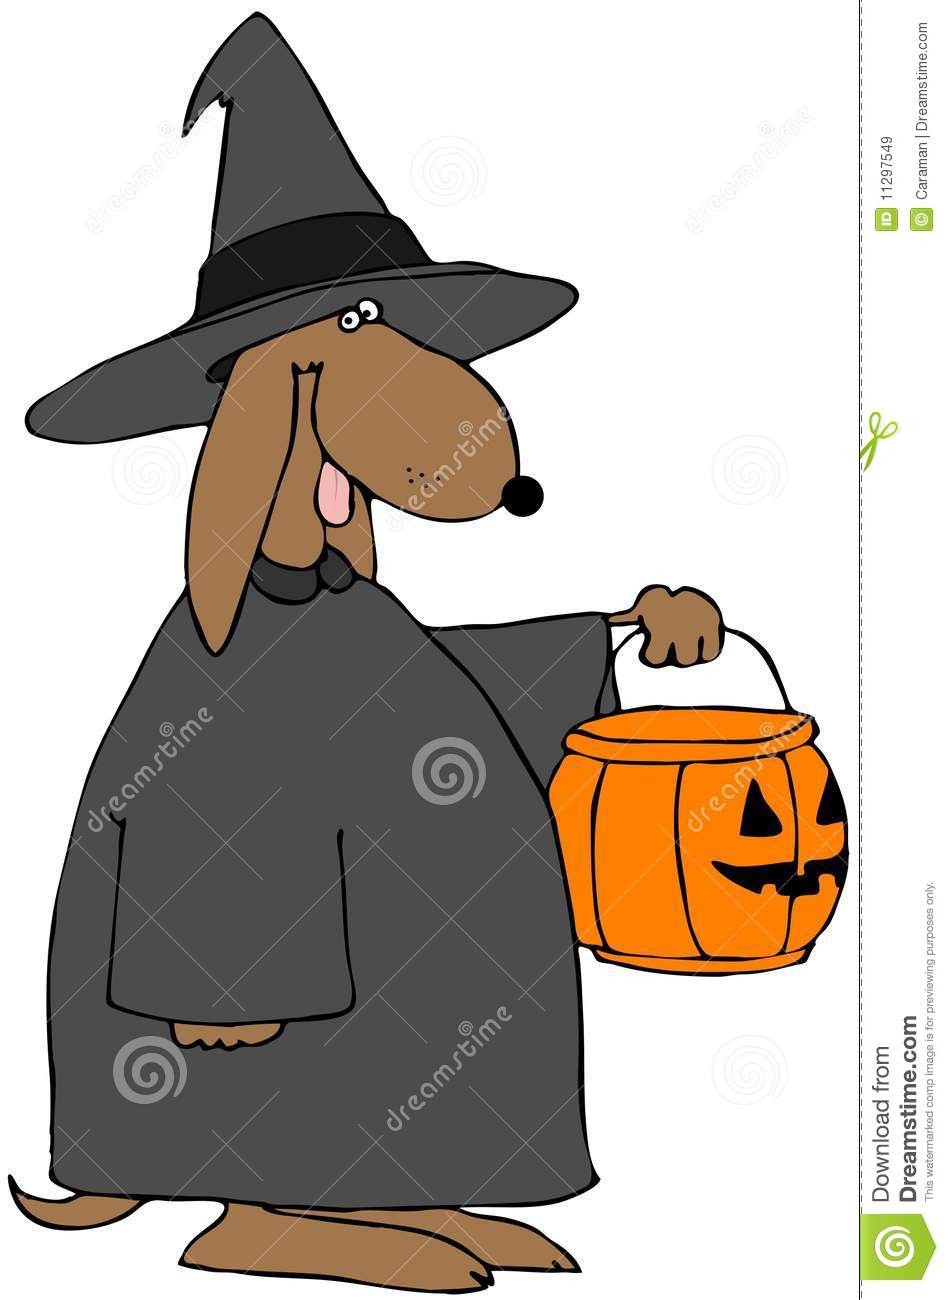 Depicts A Dog Dressed As A Witch And Holding A Trick Or Treat Pumpkin